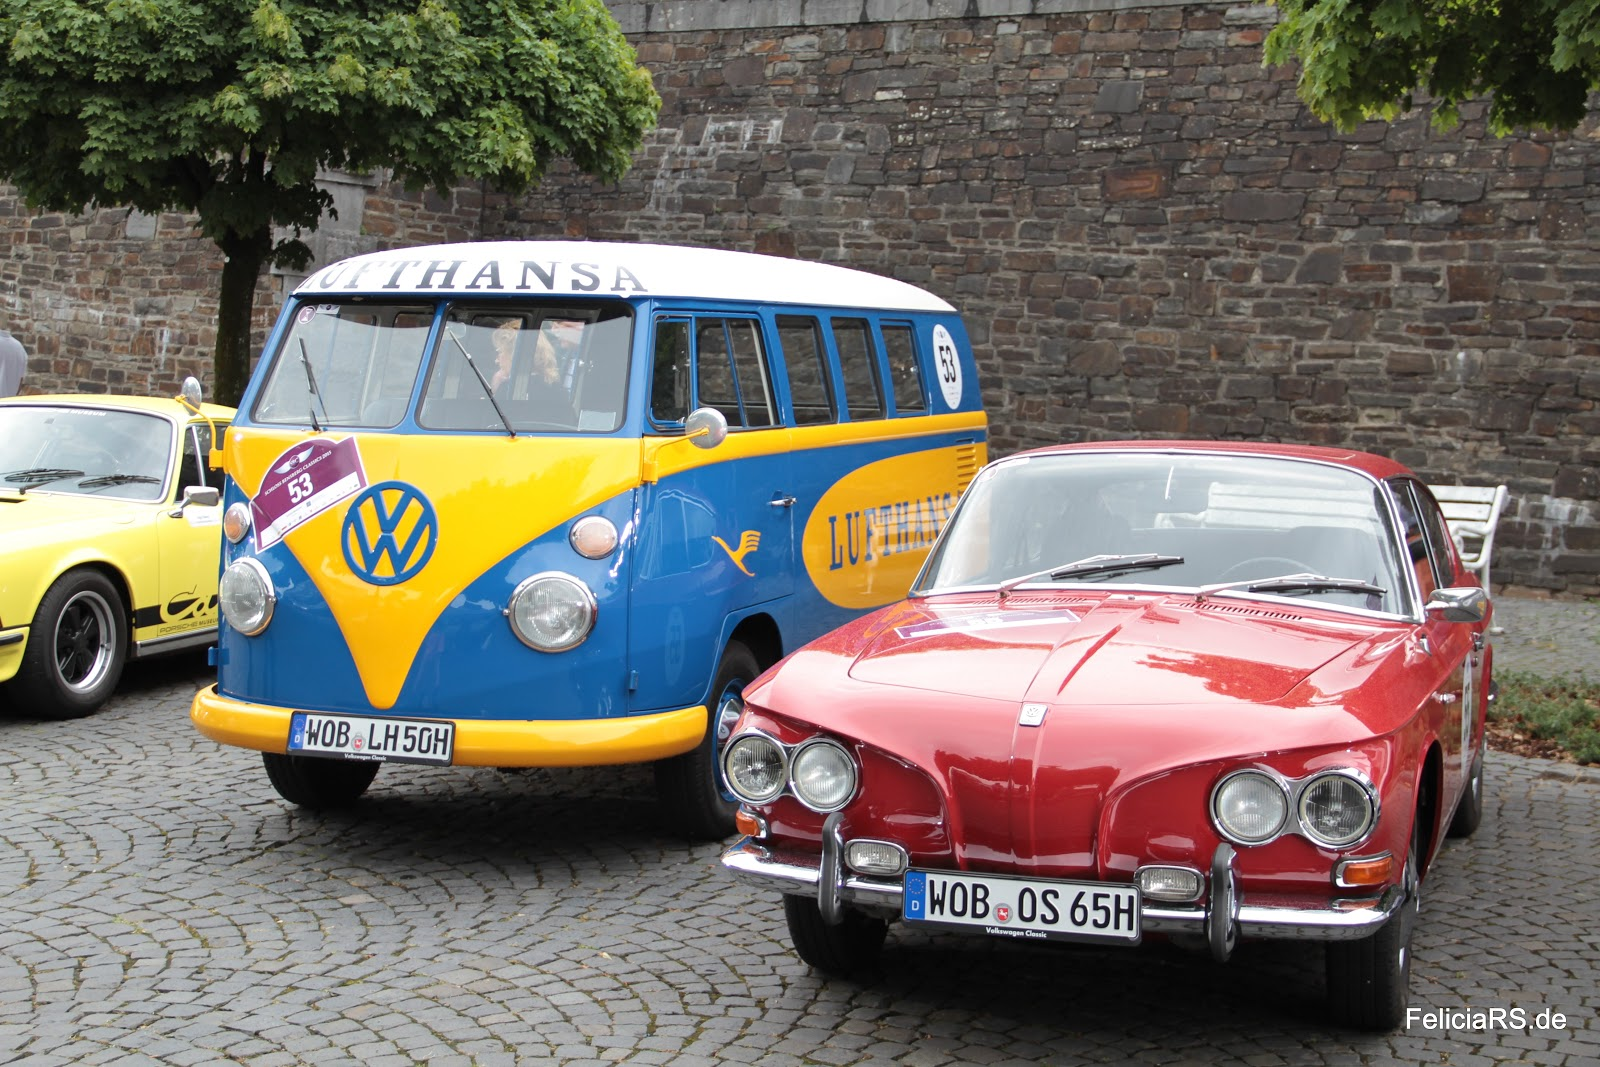 Volkswagen T1 Lufthansa, Karmann Ghia 1600 TL hatchback coupe ging nie in Serie.